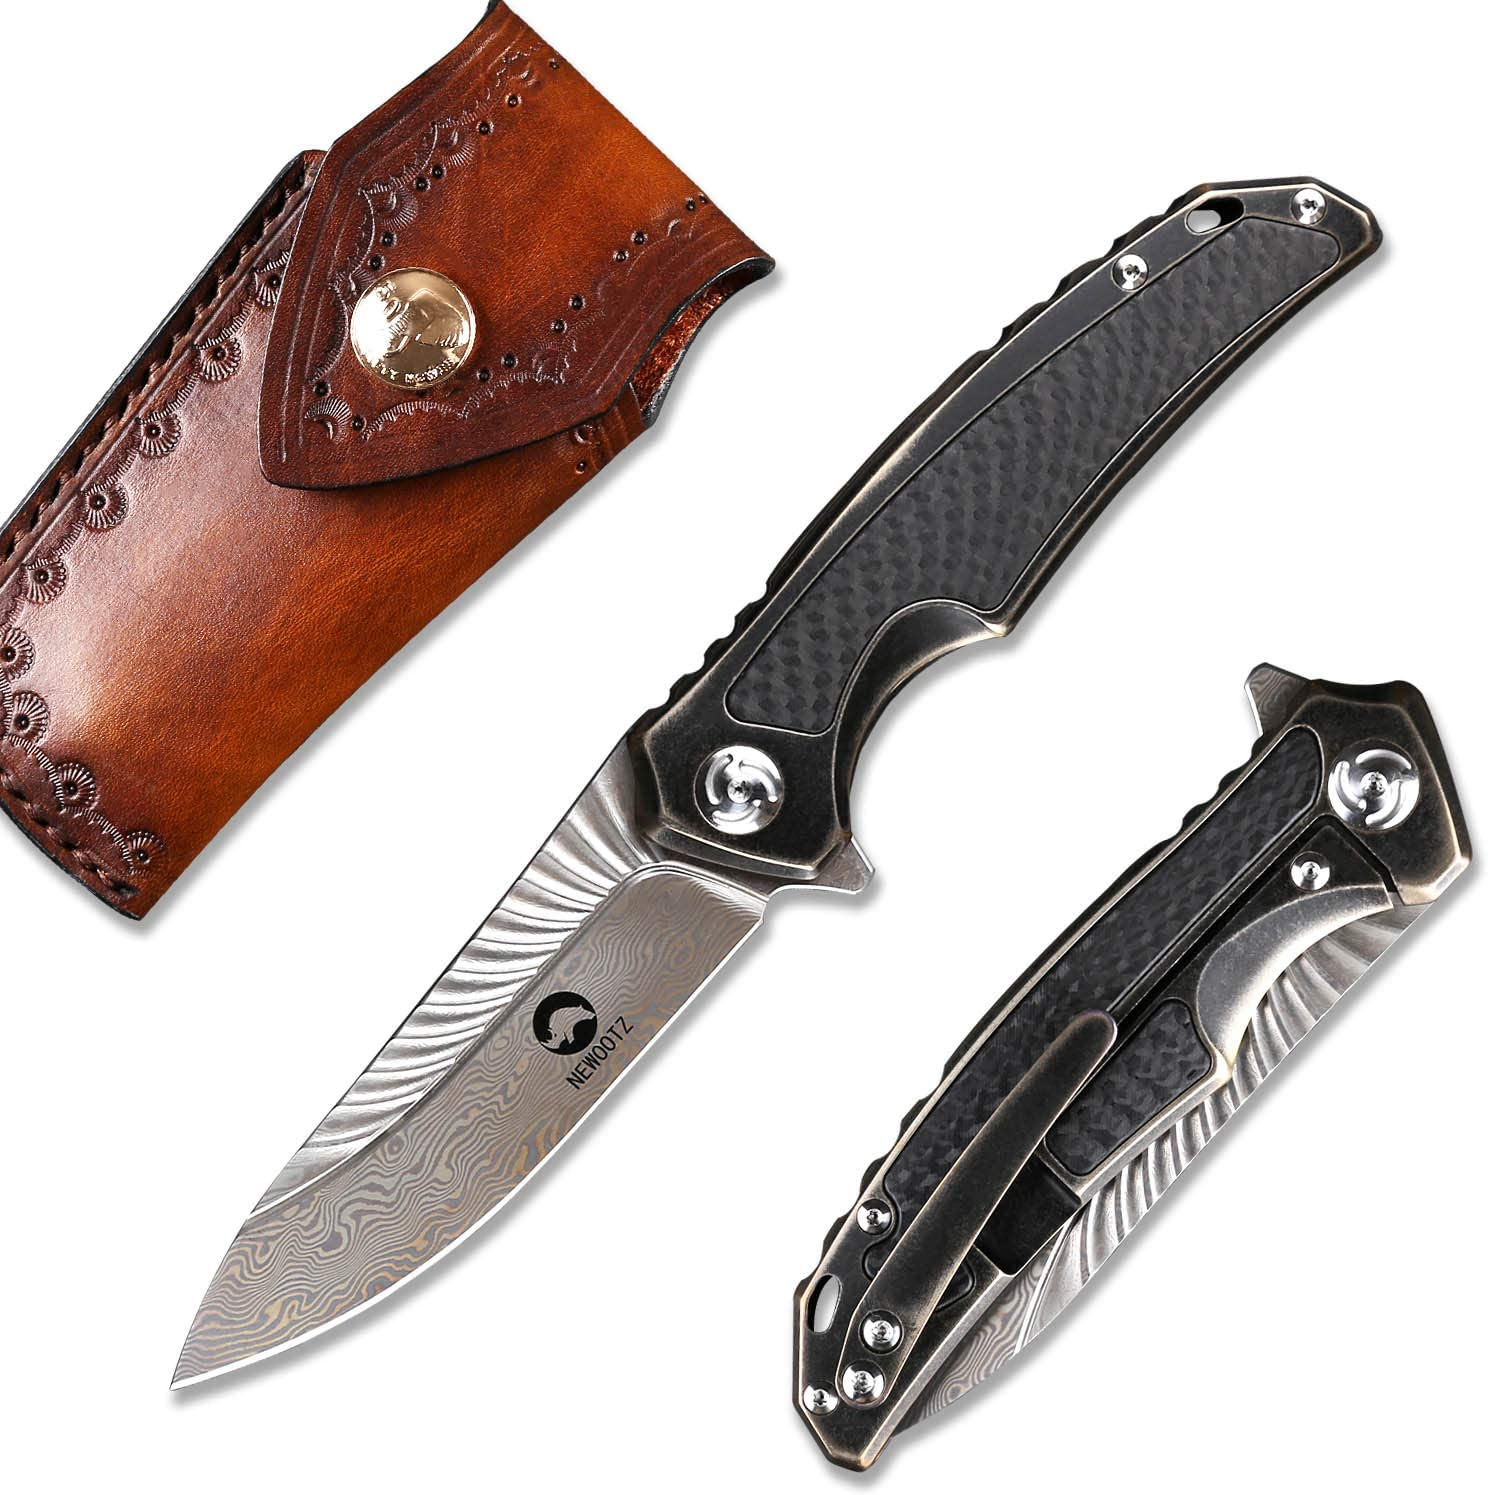 NEWOOTZ Damascus Folding Pocket Knife with Clip and Leather Sheath,Handmade Japanese VG10 Steel 3.5in Blade,Frame Lock Titanium Carbon Fiber Handle,EDC Outdoor Knives for Men